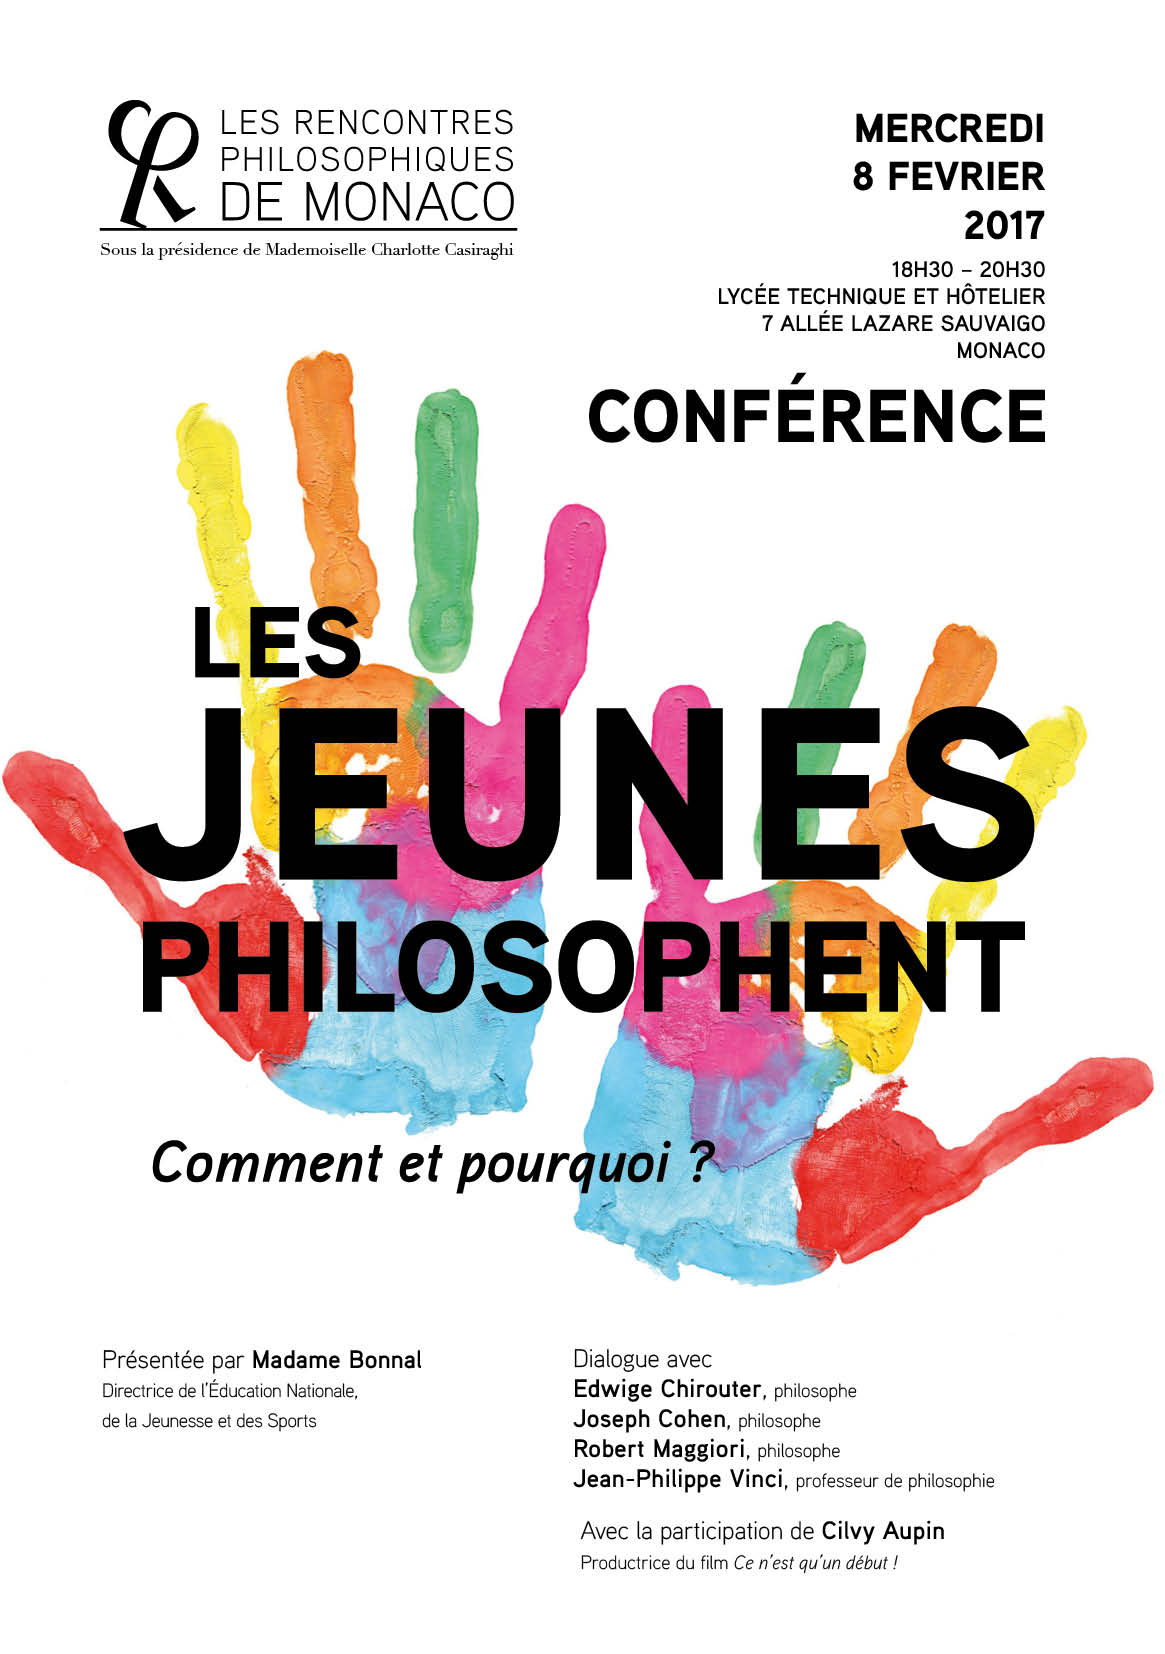 1214, 1214, 8 FEV Flyer recto Les jeunes philosophent, 8-FEV-Flyer-recto-Les-jeunes-philosophent.jpg, http://philomonaco.com/wp-content/uploads/2017/02/8-FEV-Flyer-recto-Les-jeunes-philosophent.jpg, , 2, , , 8-fev-flyer-recto-les-jeunes-philosophent, 2017-02-20 17:35:37, 2017-02-20 17:35:55, image/jpeg, image, http://philomonaco.com/wp-includes/images/media/default.png, 1165, 1654, Array